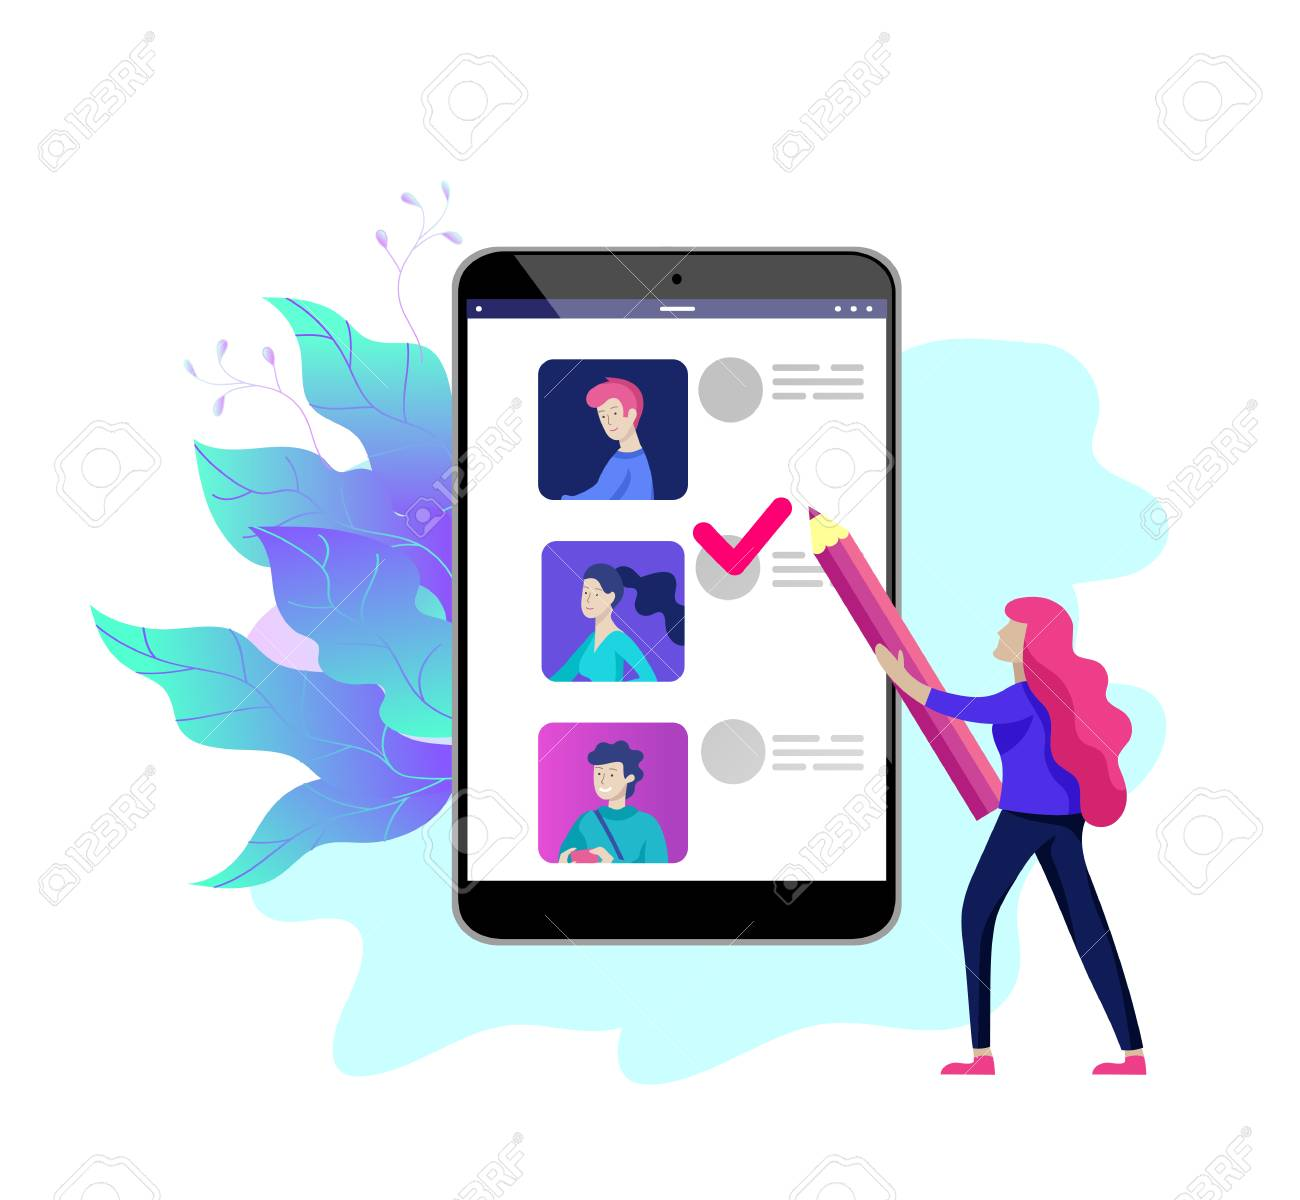 Voting and Election concept. Pre-election campaign. Promotion and advertising of candidate. Citizens debating candidates for voting and voting Online voting and election concept with people. - 126757327